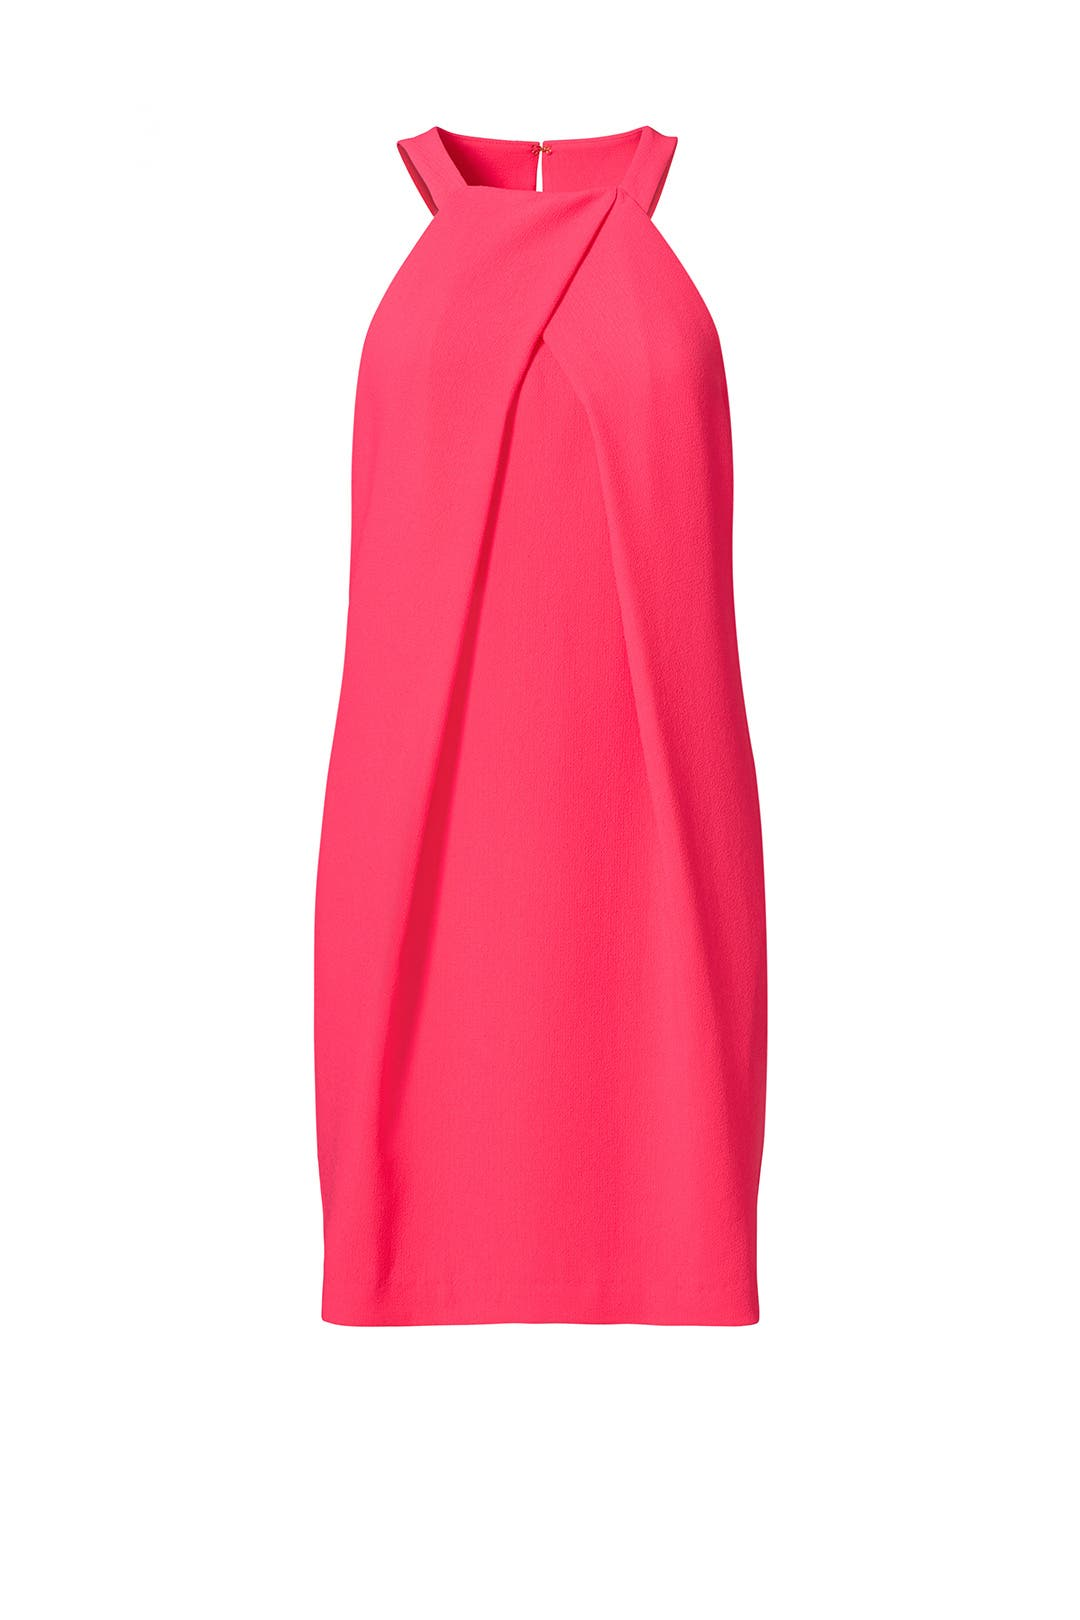 pink origami fold dress by trina turk for 40 50 rent